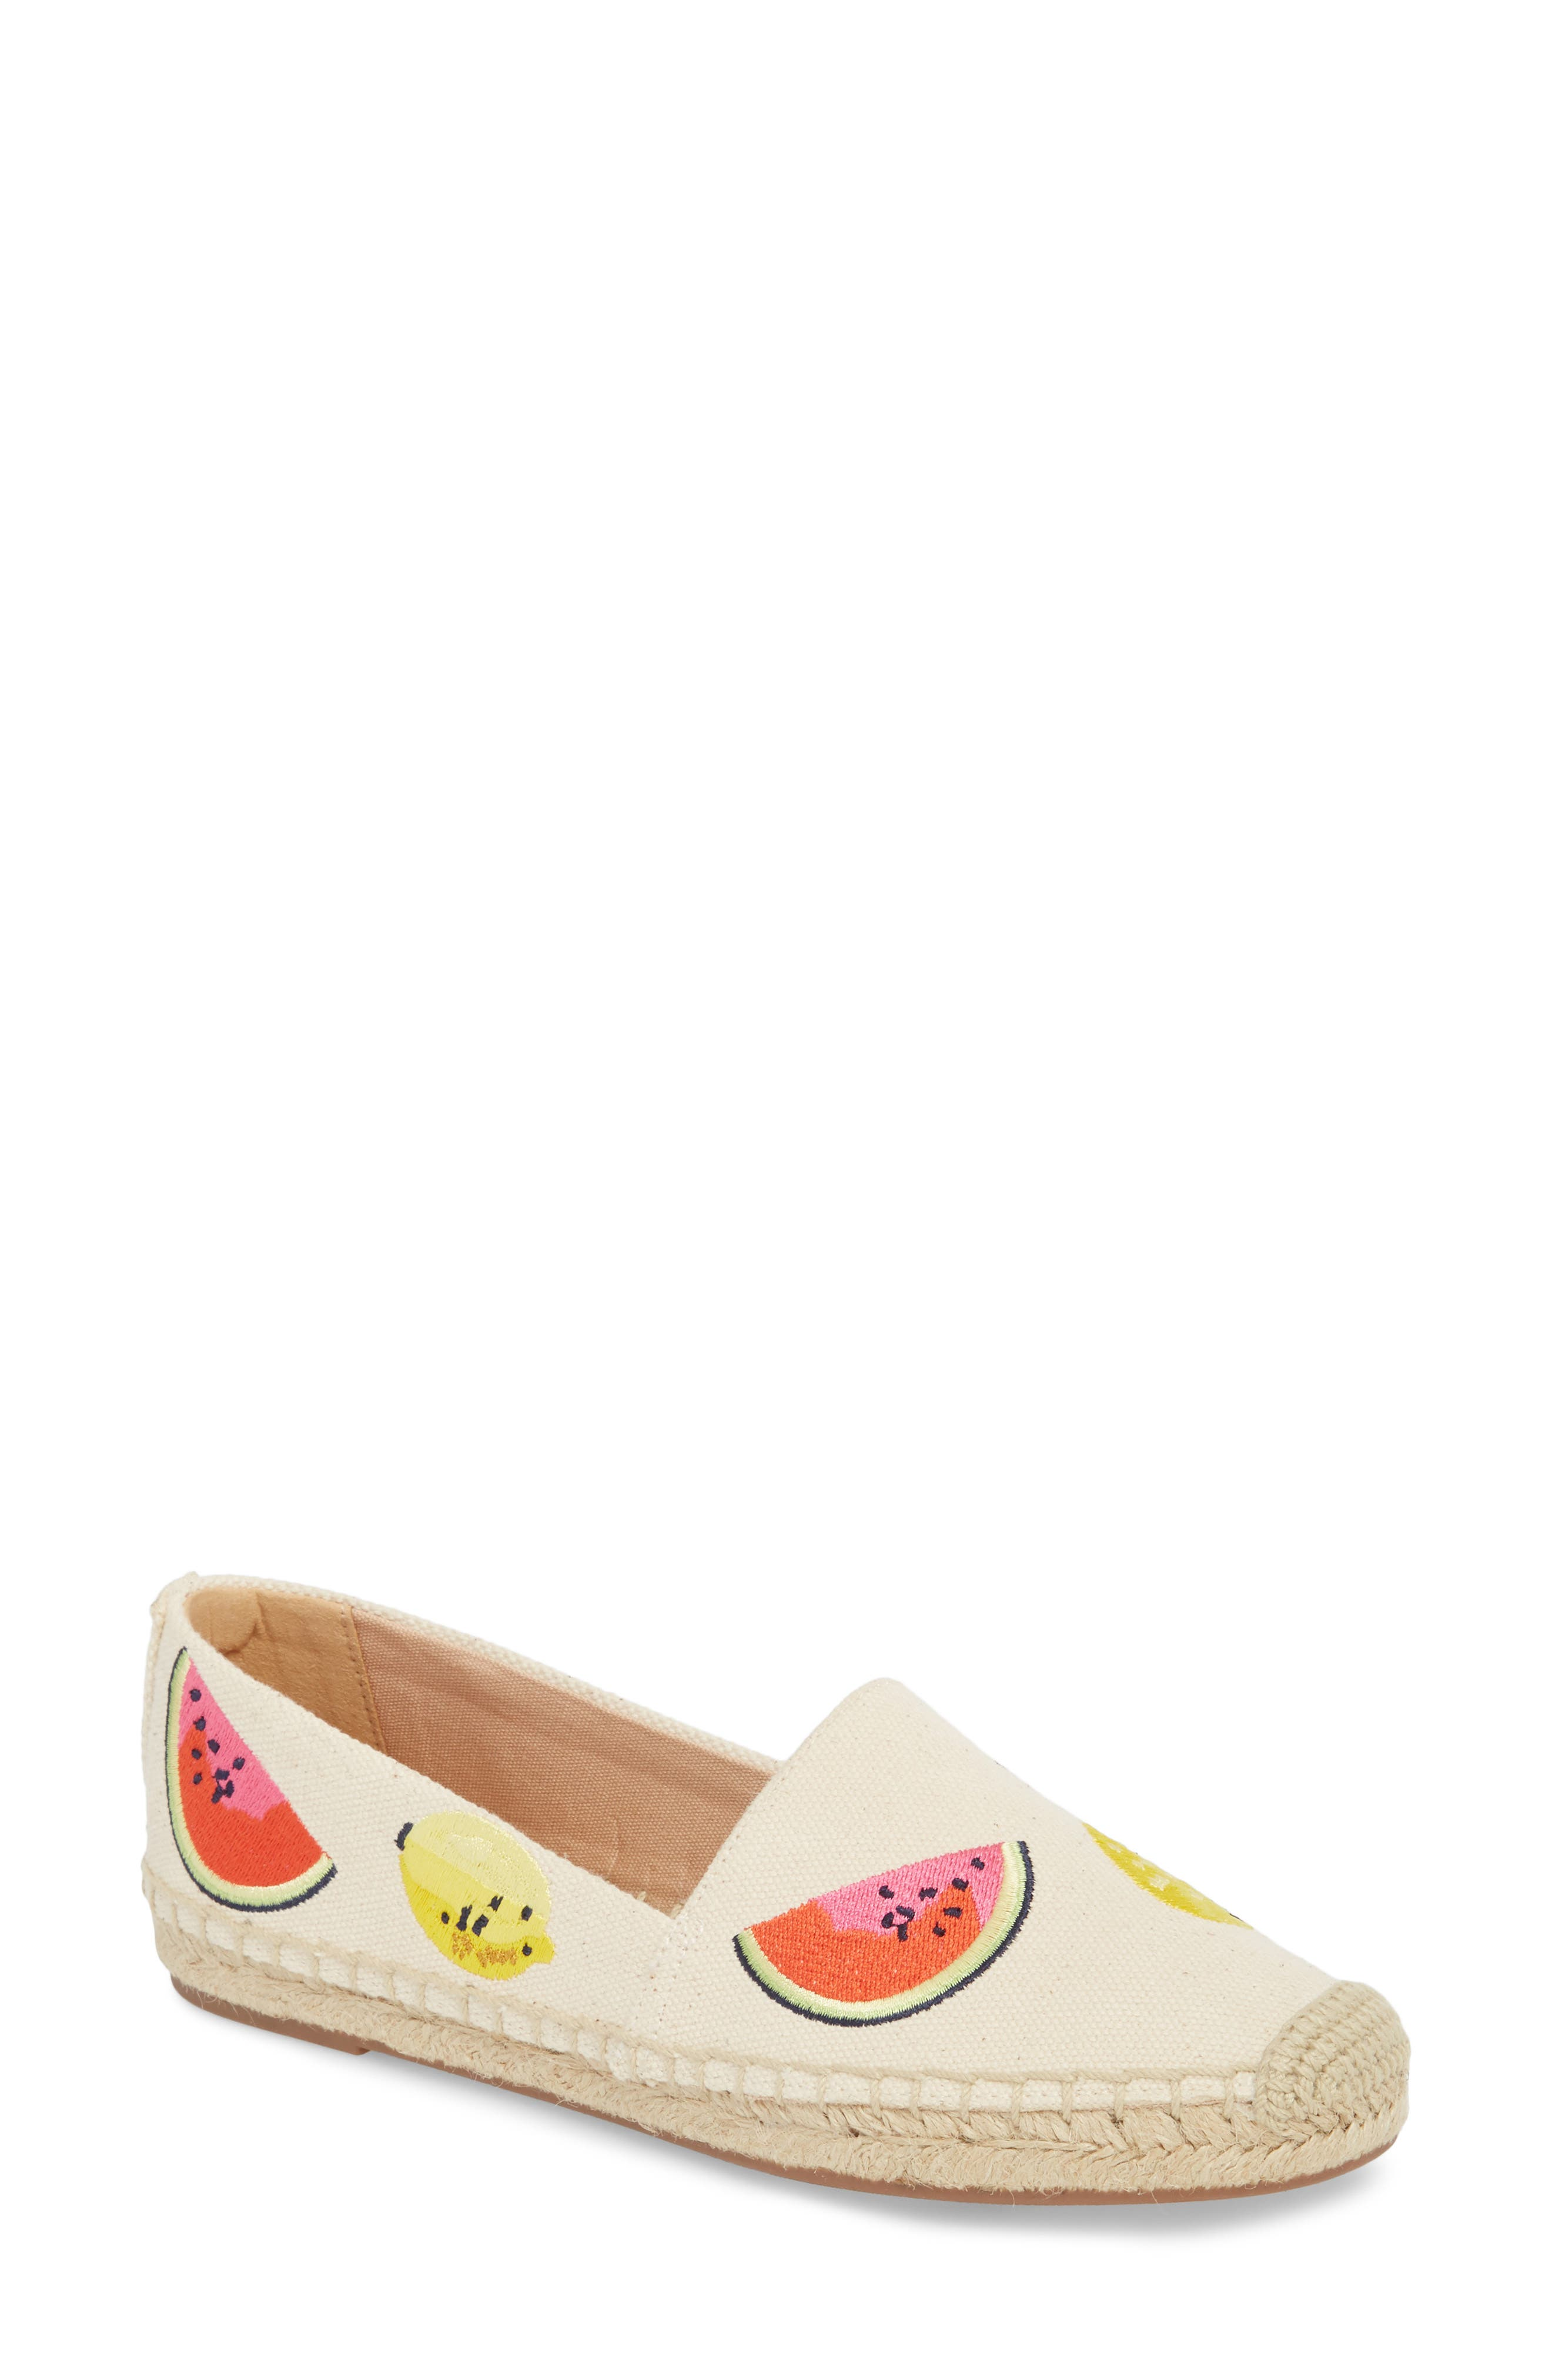 Fruit Salad Embroidered Espadrille,                             Main thumbnail 1, color,                             250